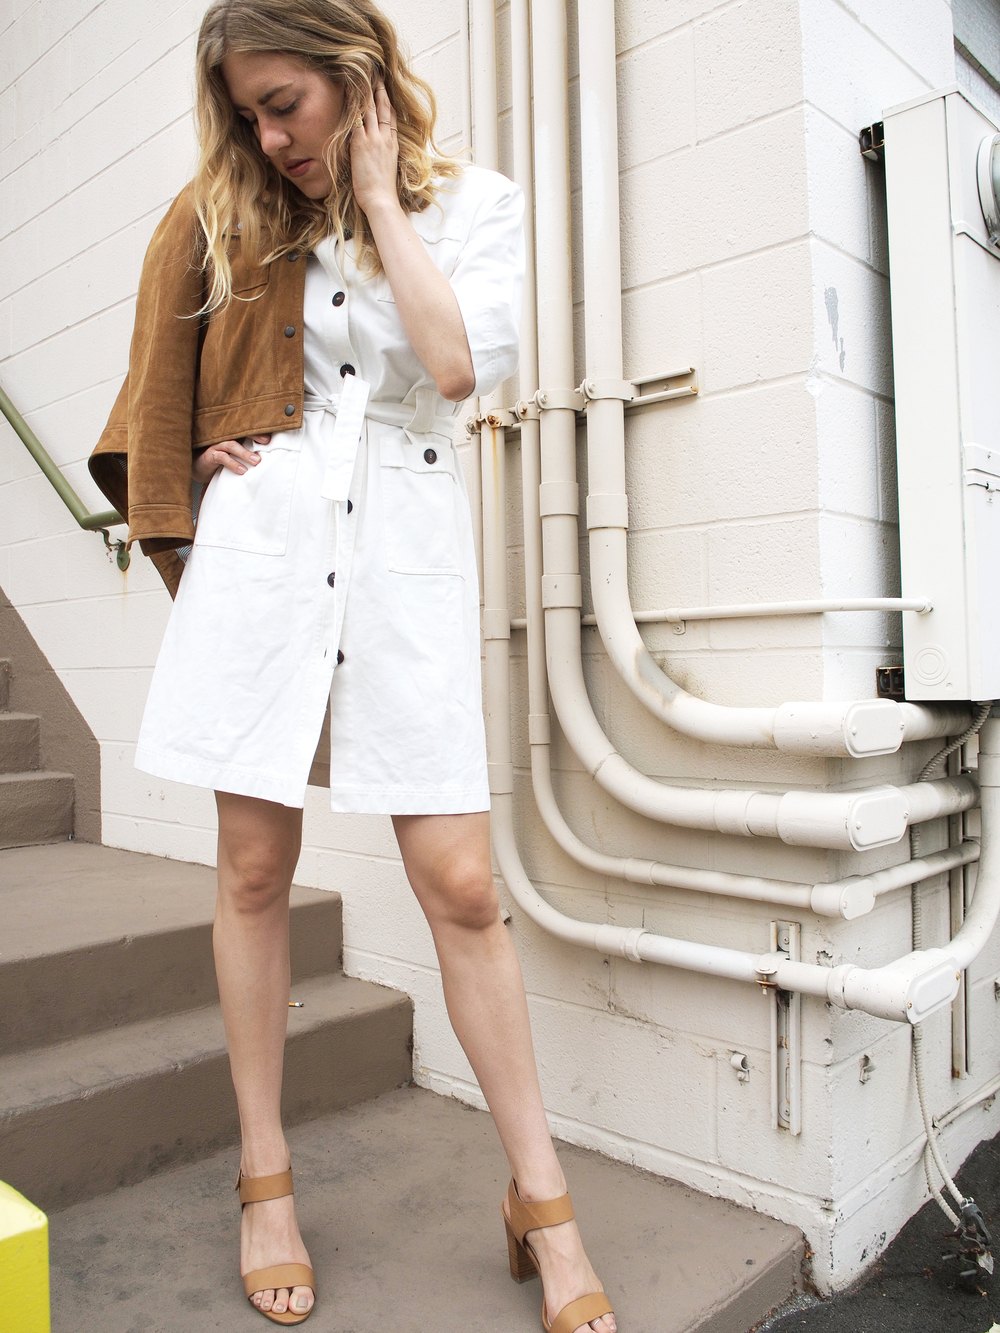 Setting the Tone Basics Aren't Boring M.i.h Jeans Iola Dress Madewell Suede Wayfind Jacket Street Style x Taylr Anne